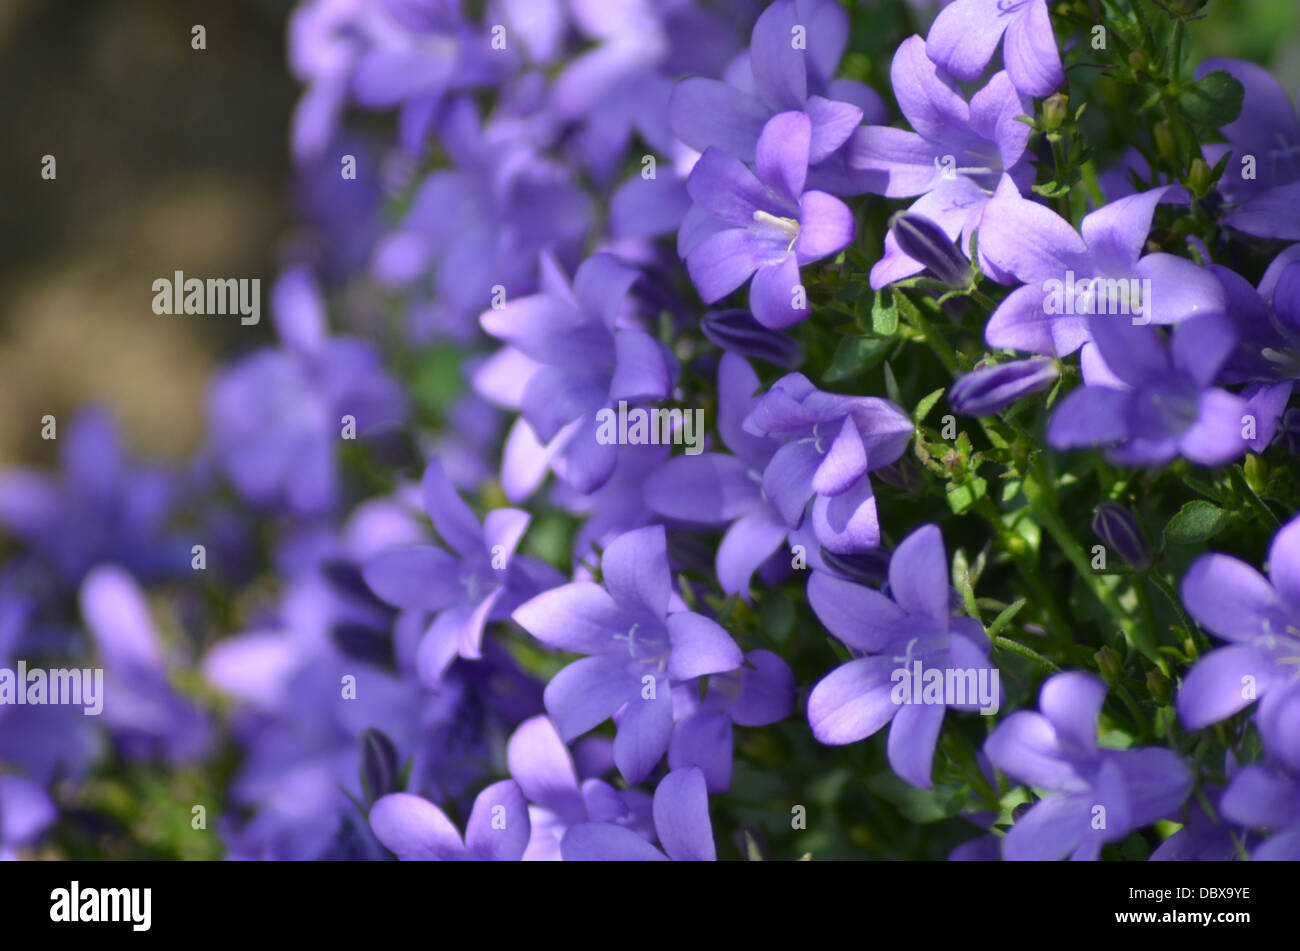 Purple bell flowers stock photos purple bell flowers stock images field of purple bell flowers campanula stock image mightylinksfo